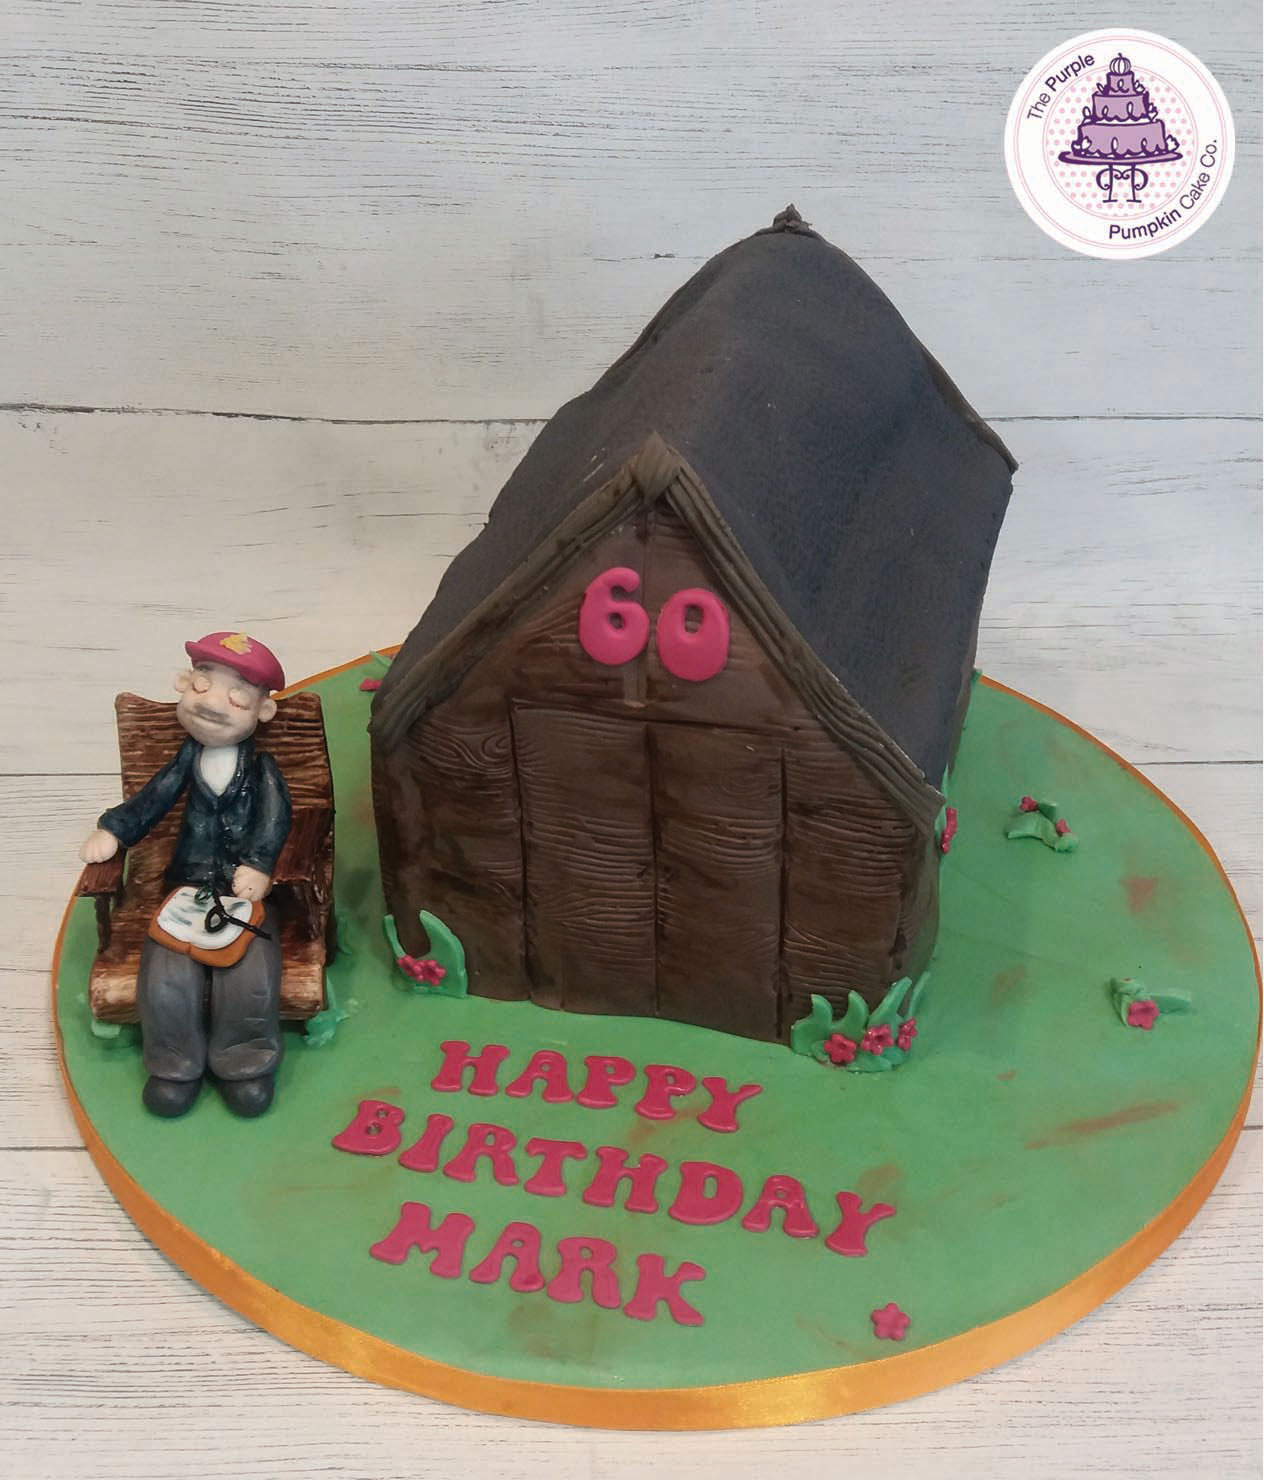 One man and his shed cake